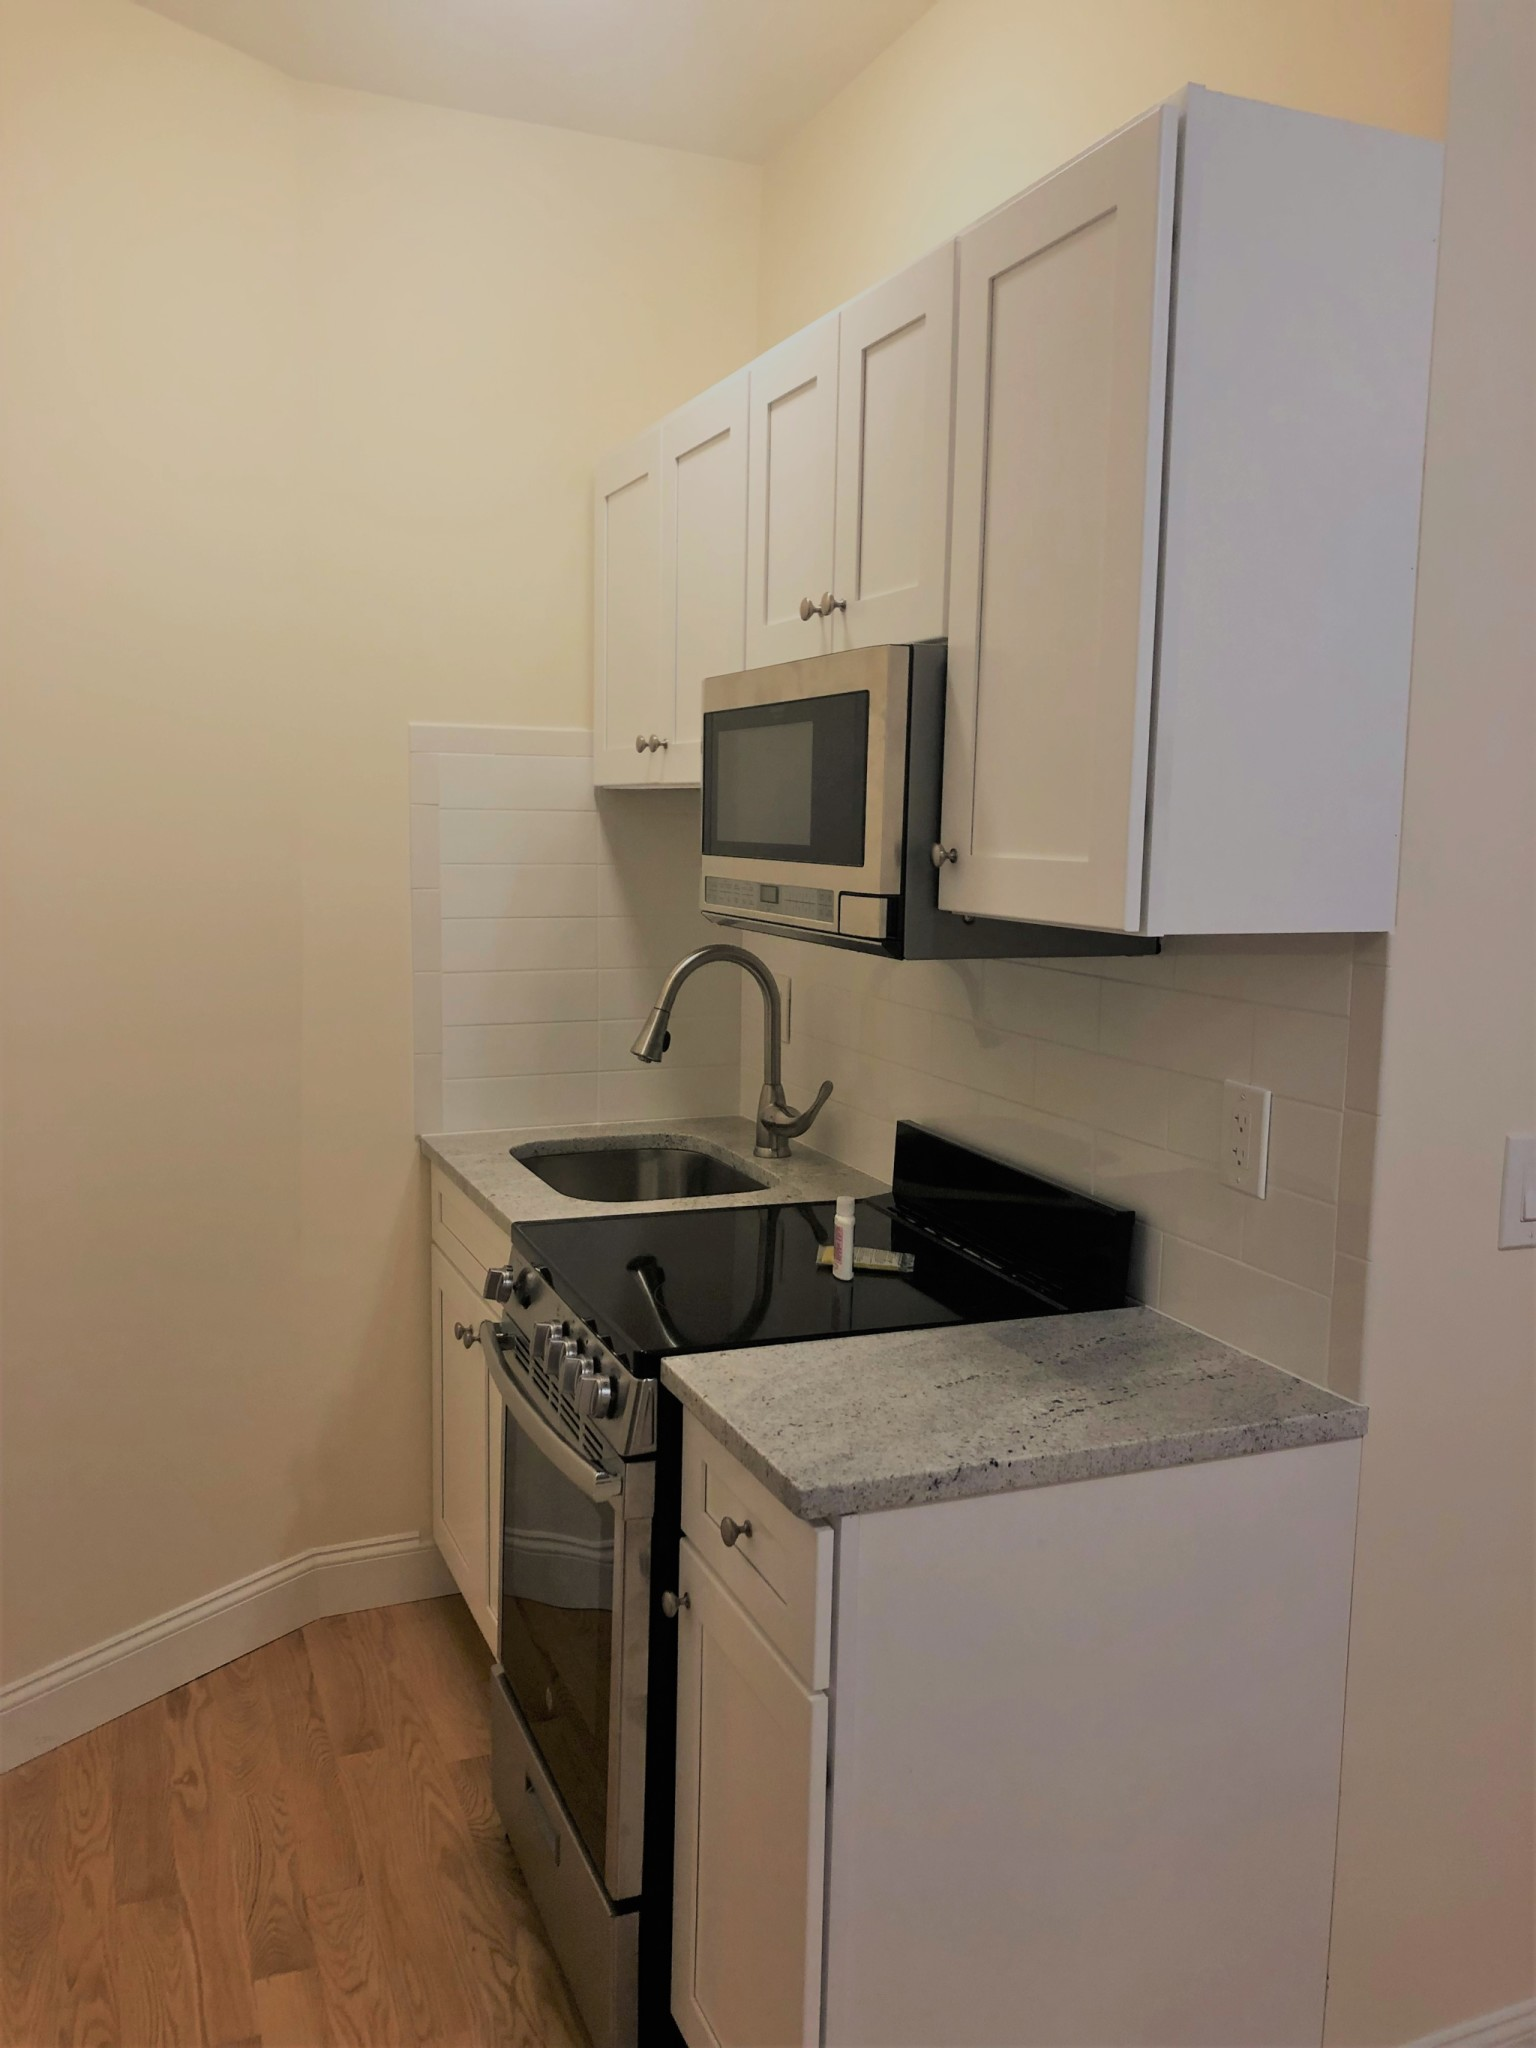 Avail 9/1 - Roomy, Renovated, Modern Studio on Haviland!!!